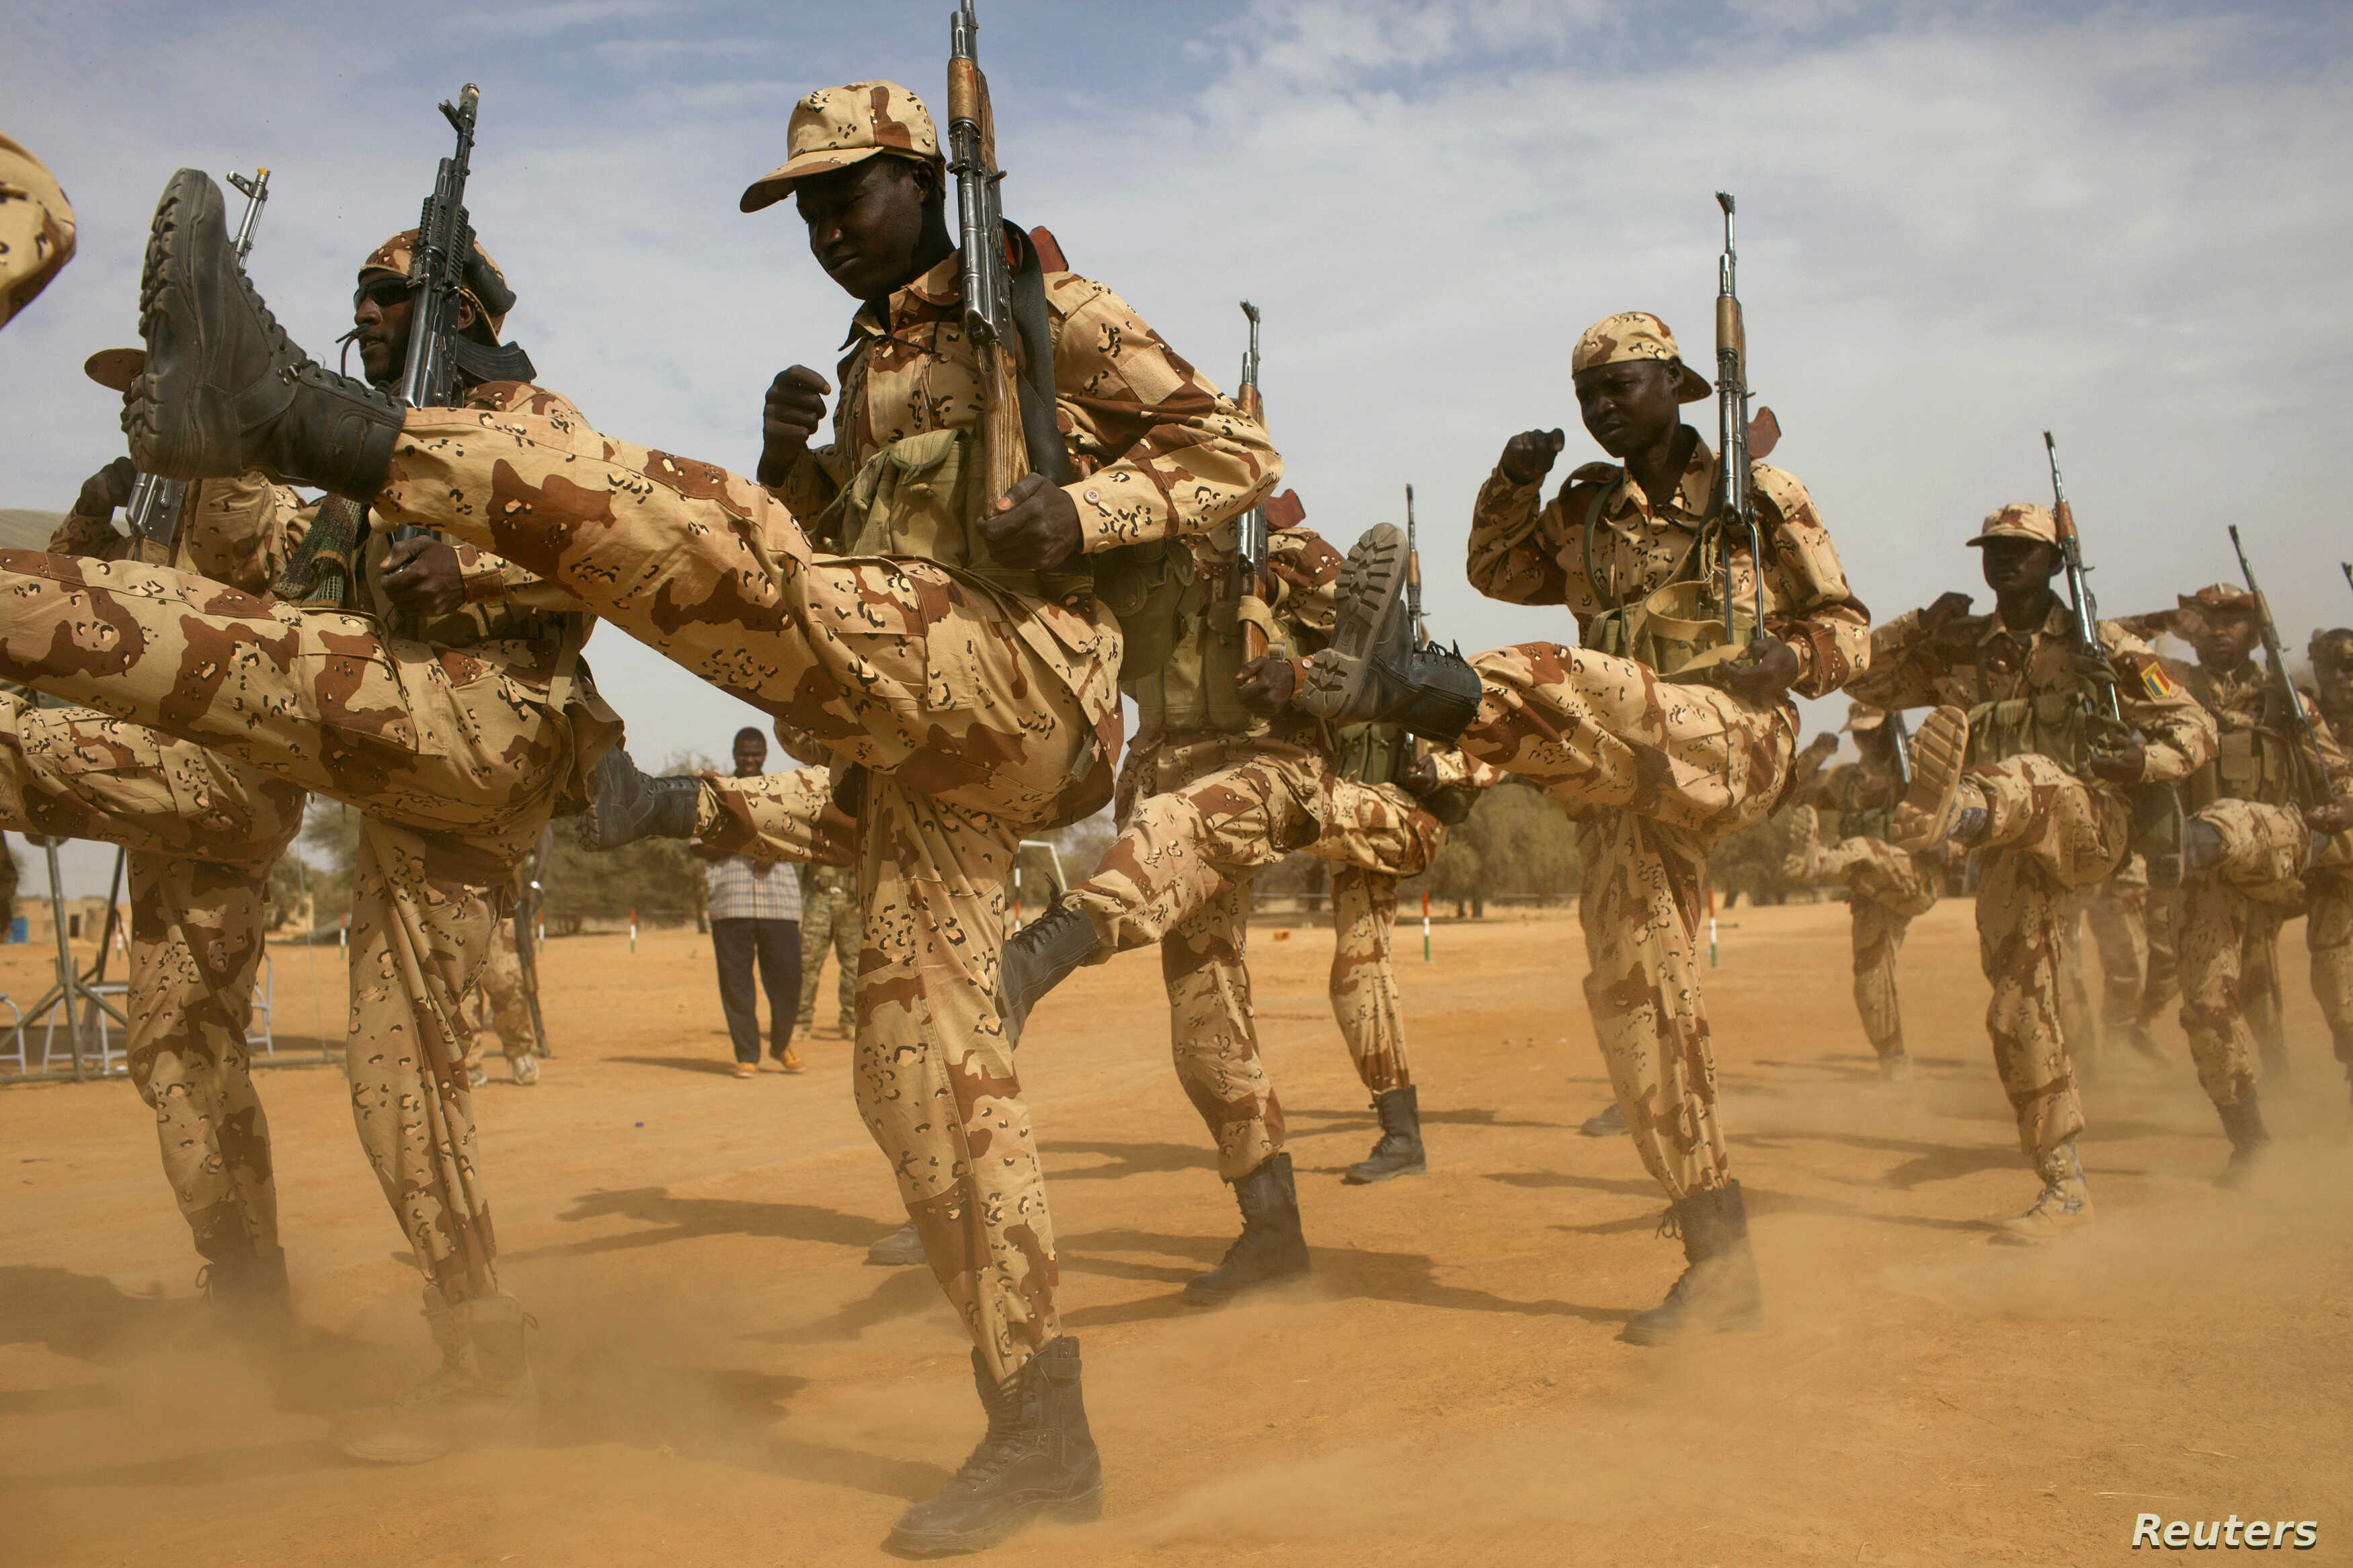 Chad Pulls Troops From Fight Against Boko Haram in Niger